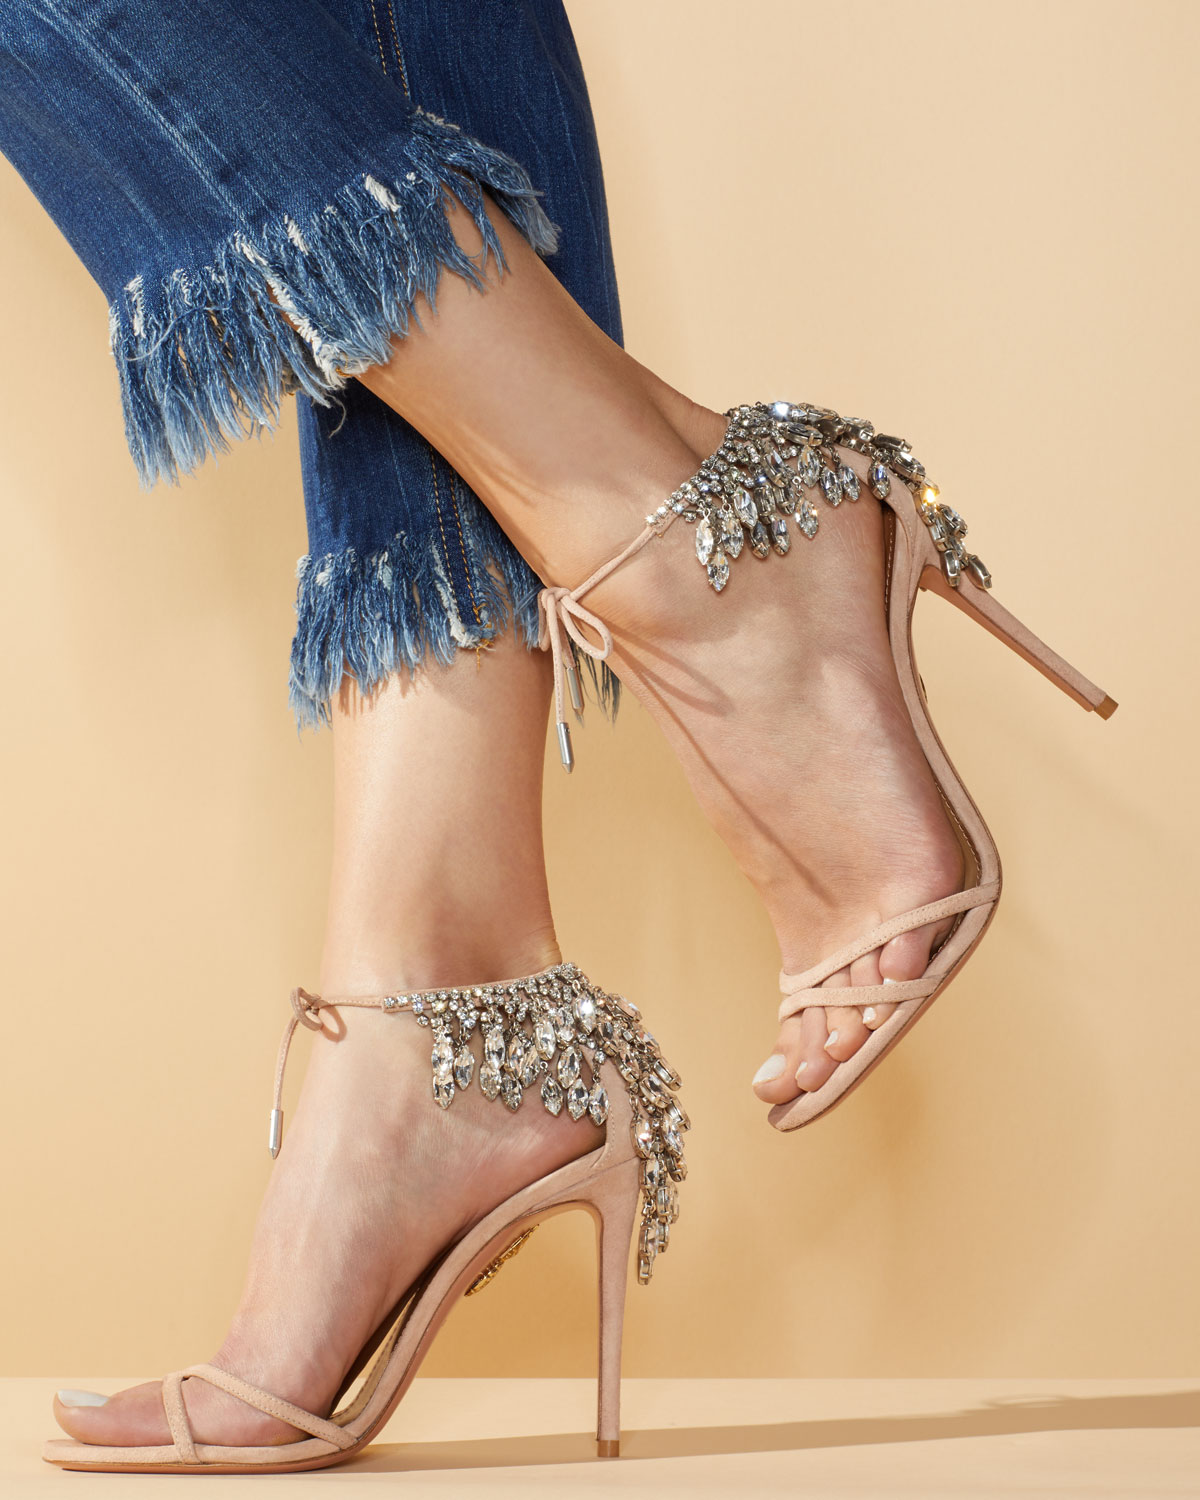 Lovng these bejeweled Sandals!